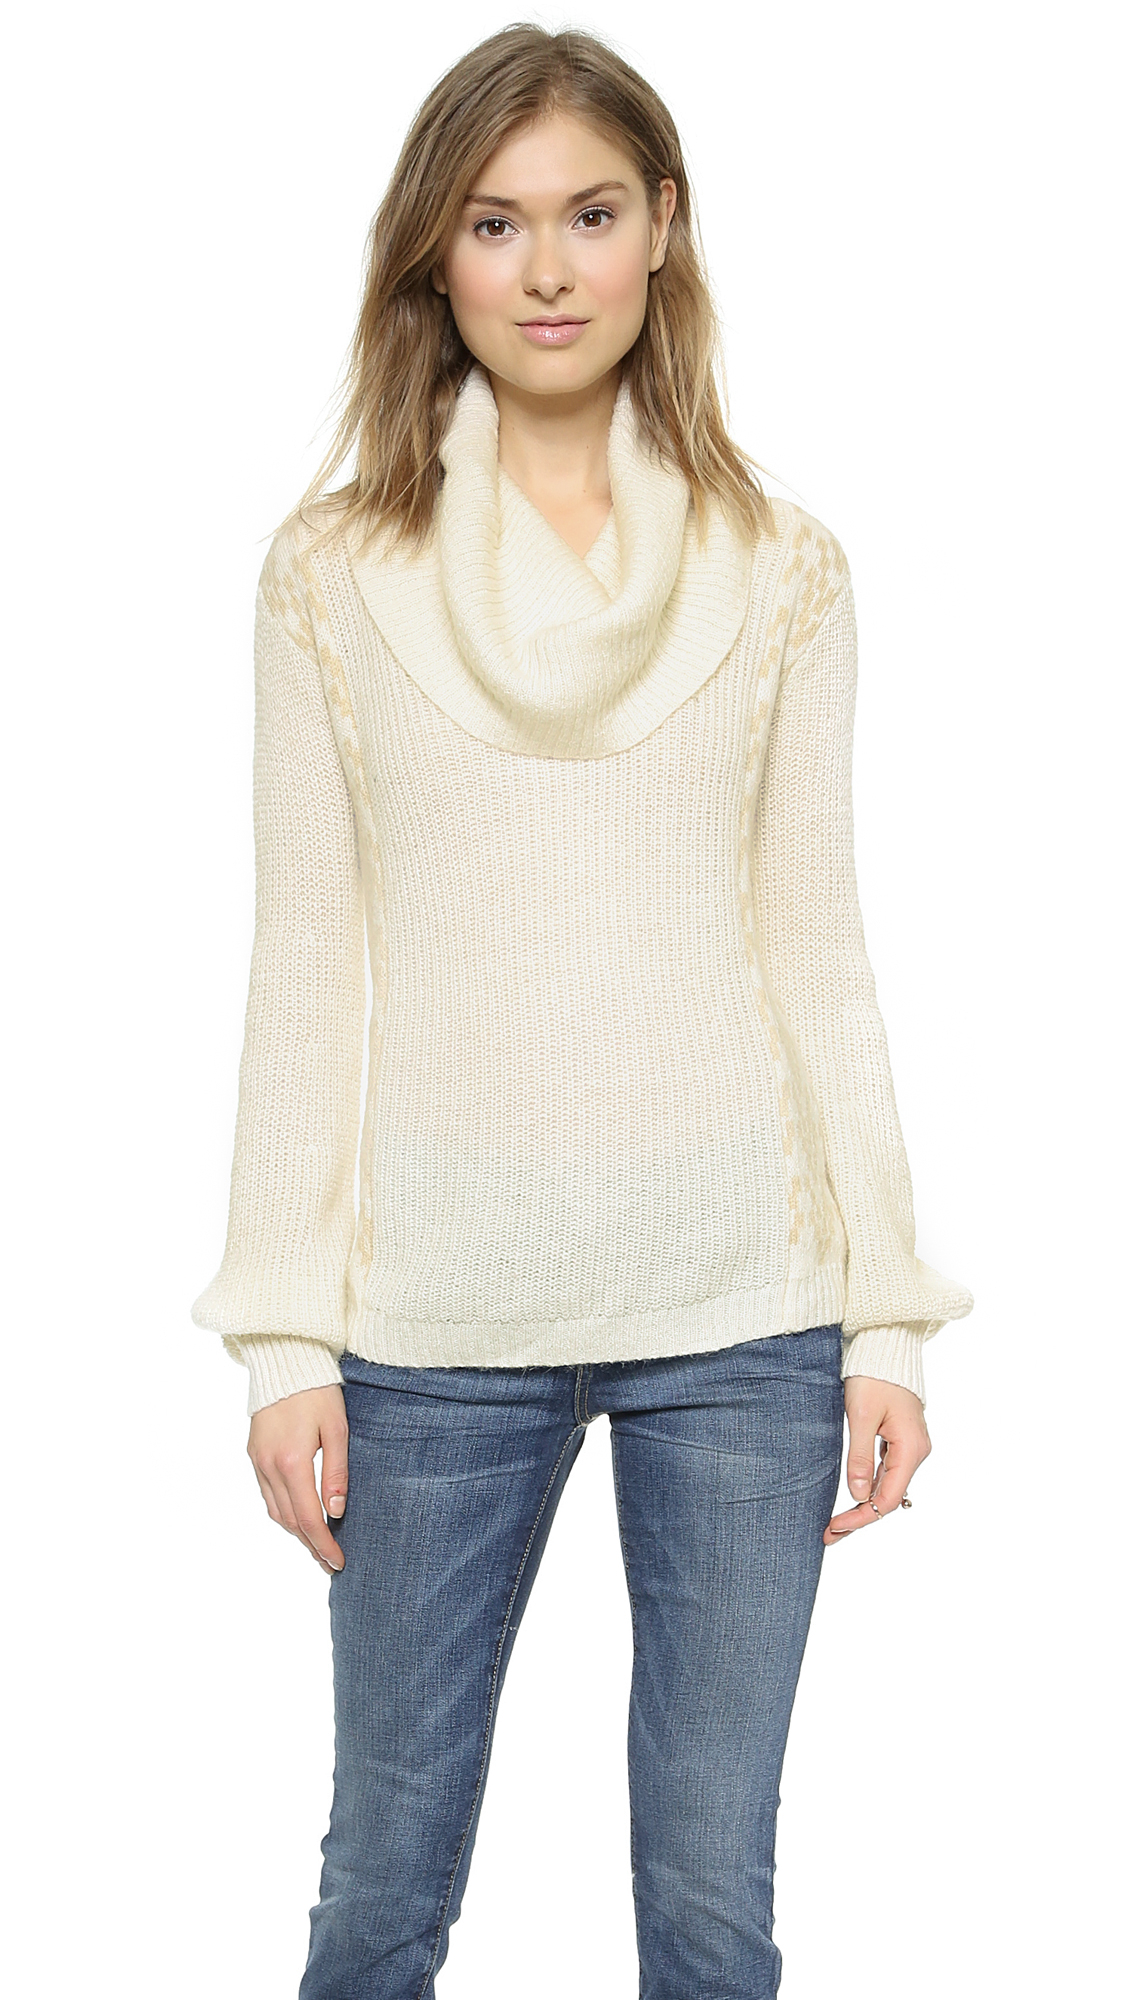 Ella Moss Sweater 28